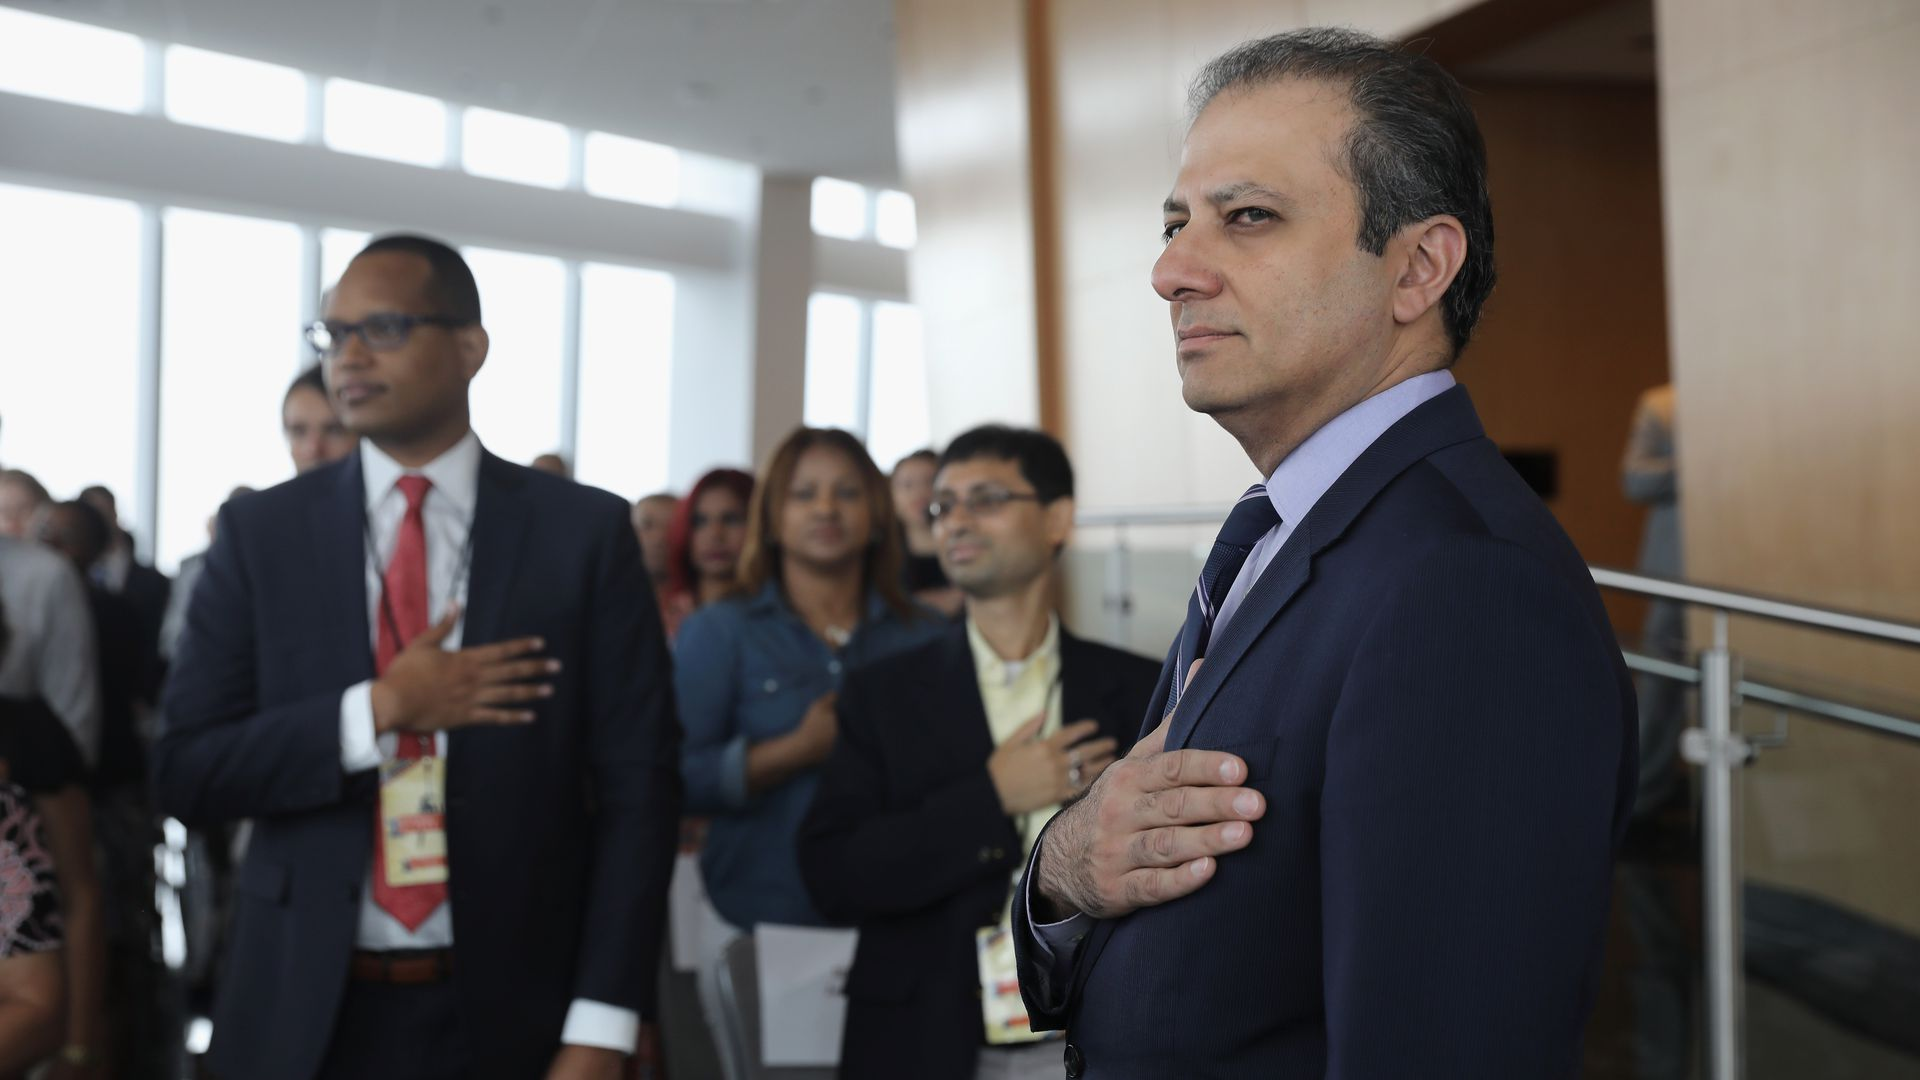 Preet Bharara stands with his hand over his heart.